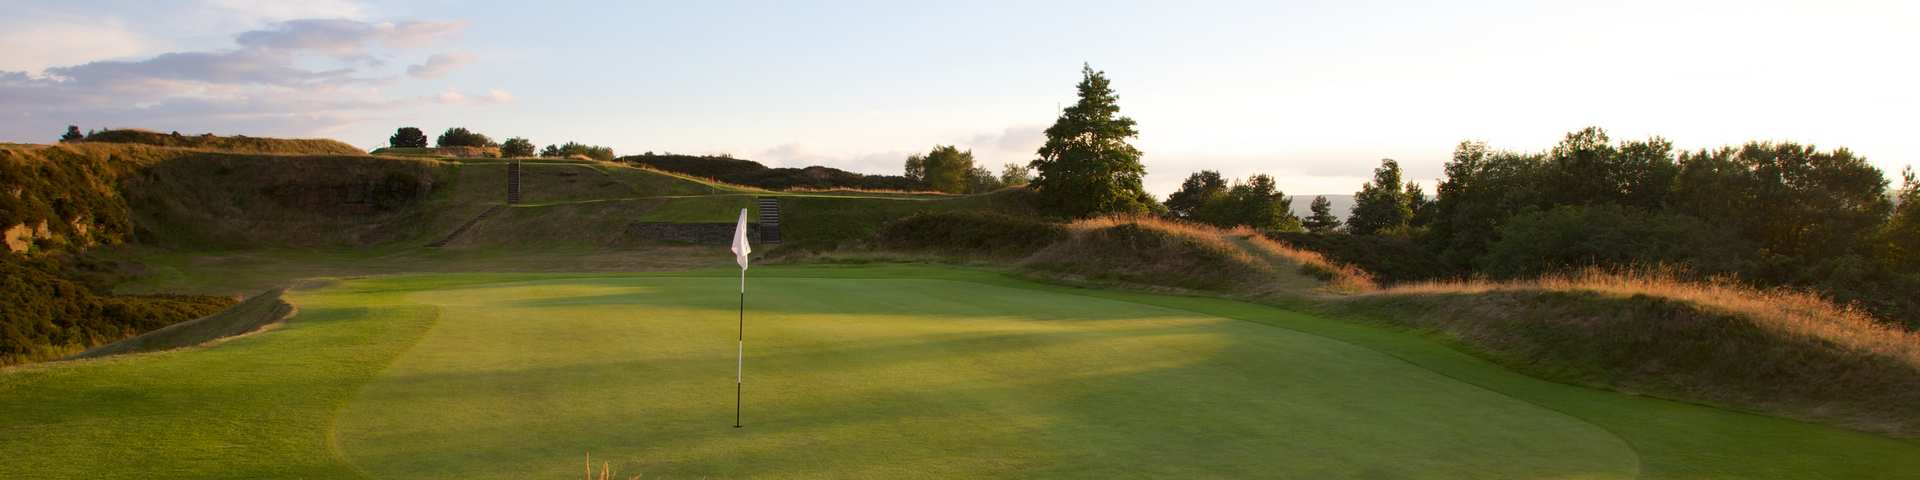 Crosland Heath Golf Club